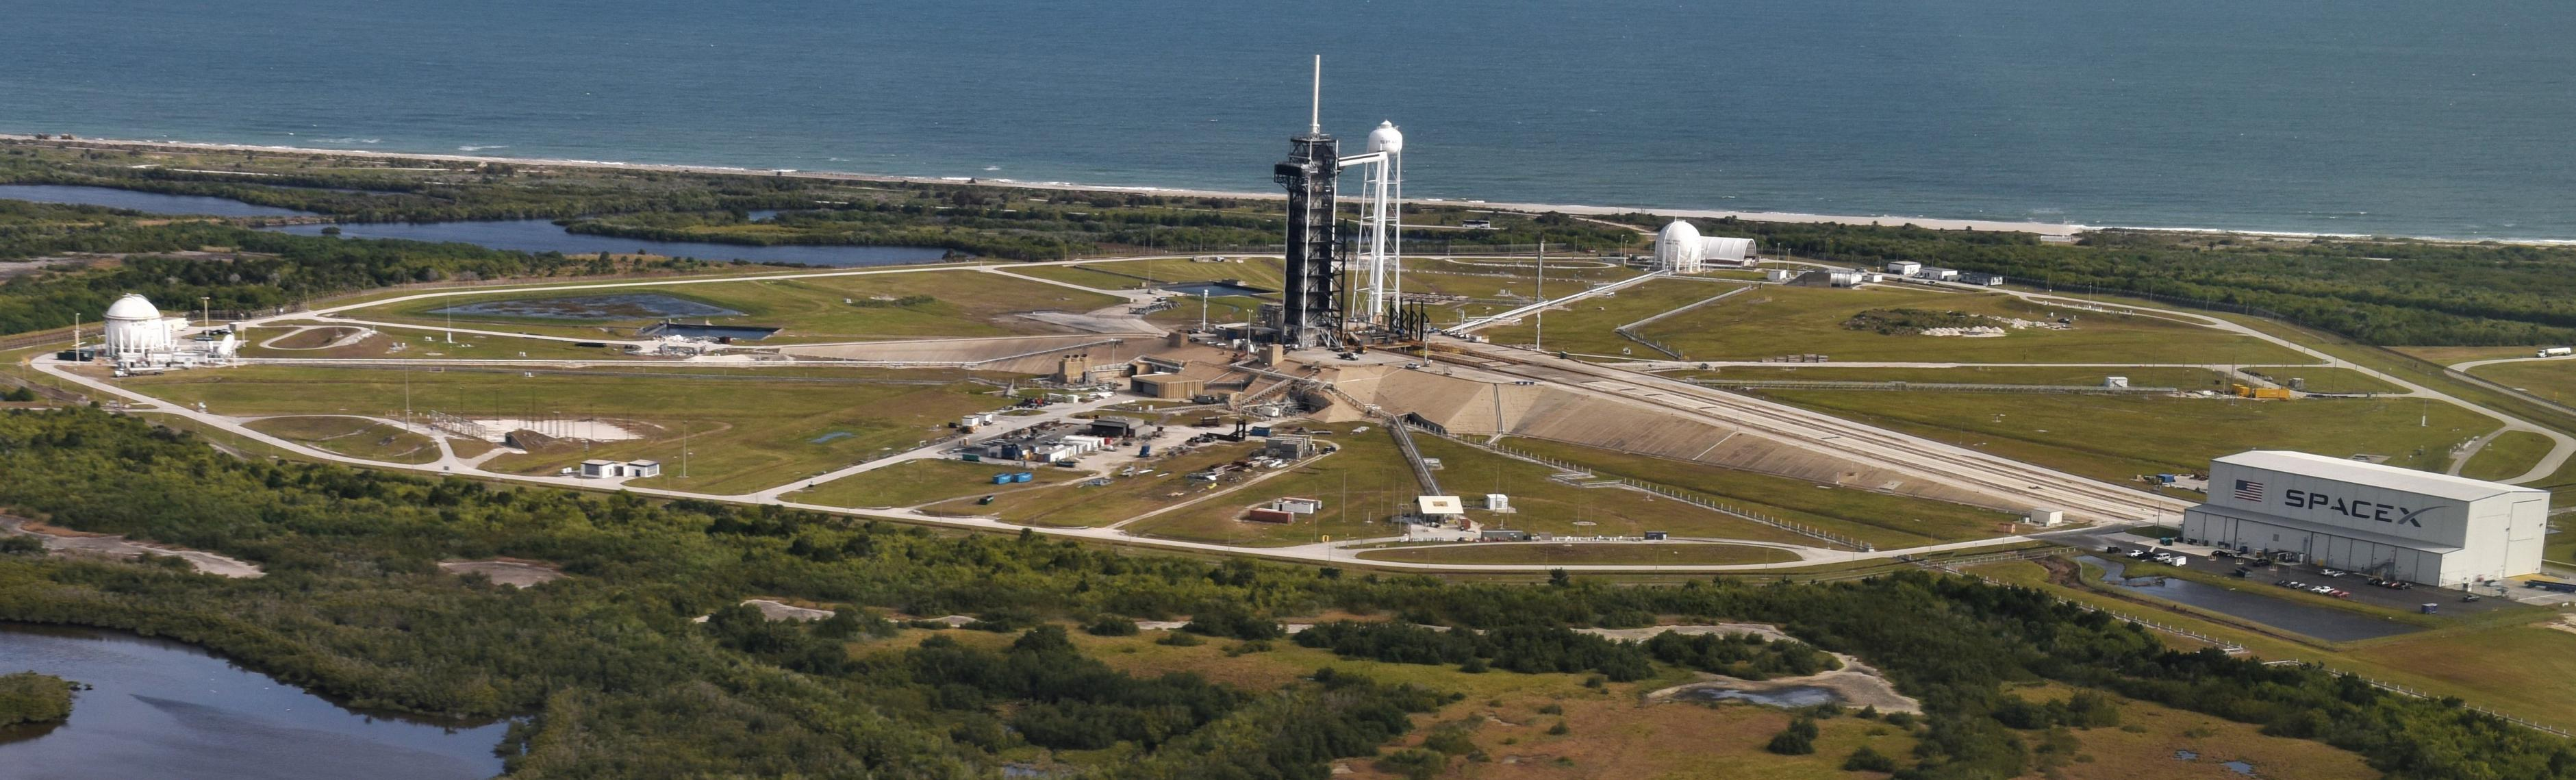 SpaceX teases extreme Falcon 9 launch cadence goals in Starship planning doc